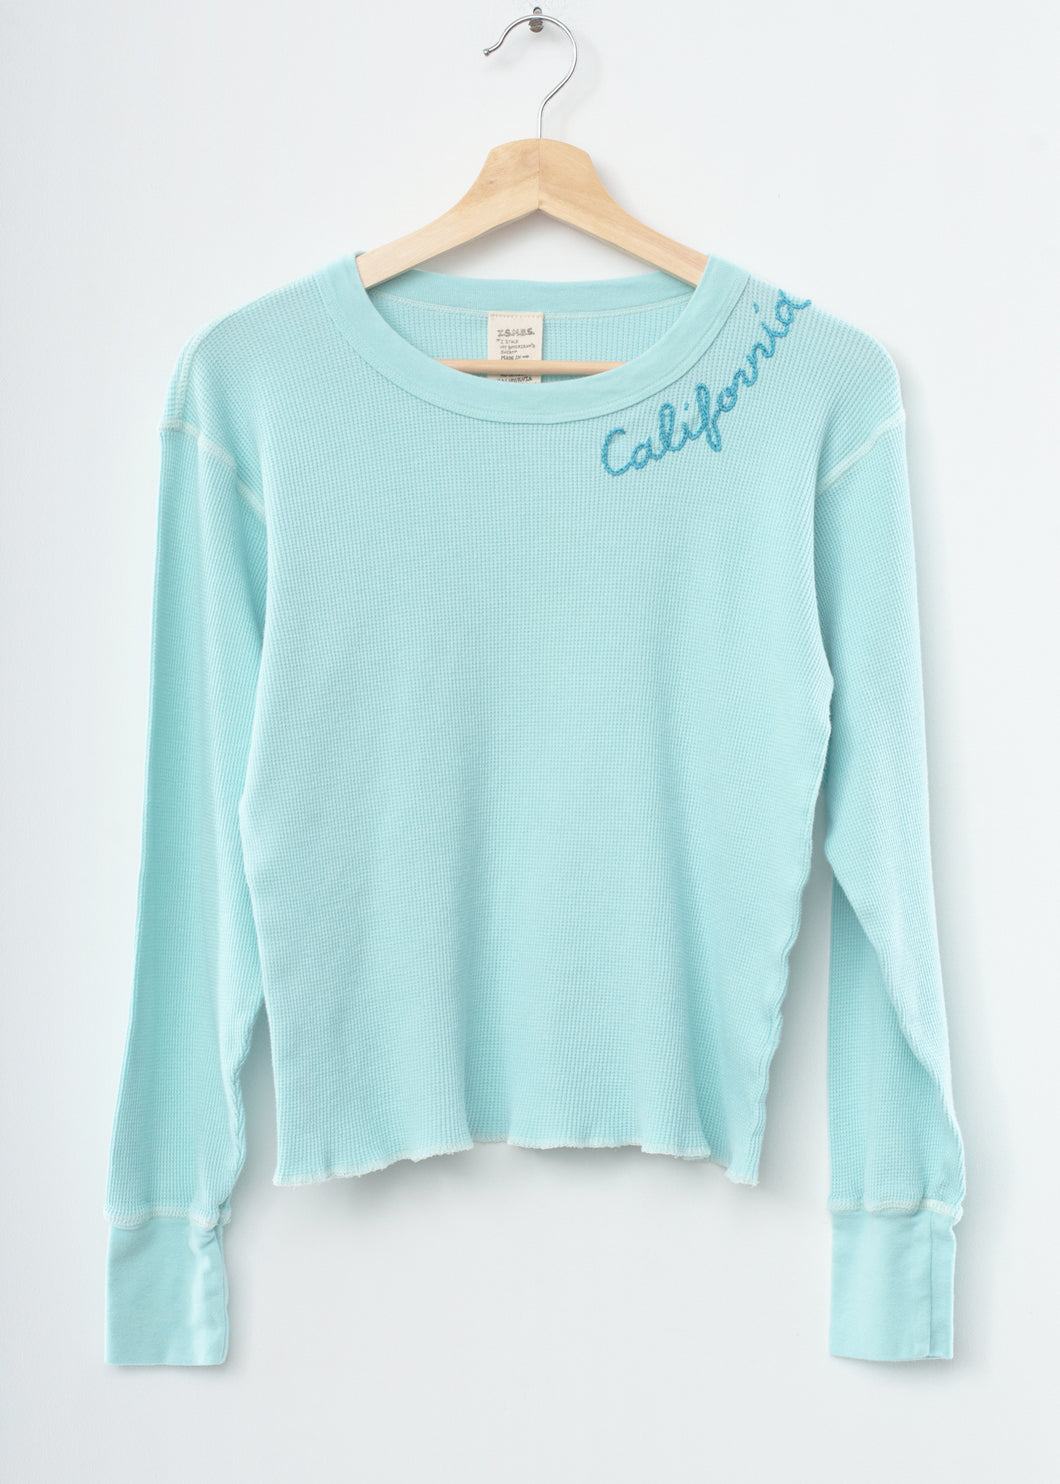 PASTEL BLUE  L/S THERMAL TEE  WITH CUSTOM HAND EMBROIDERY